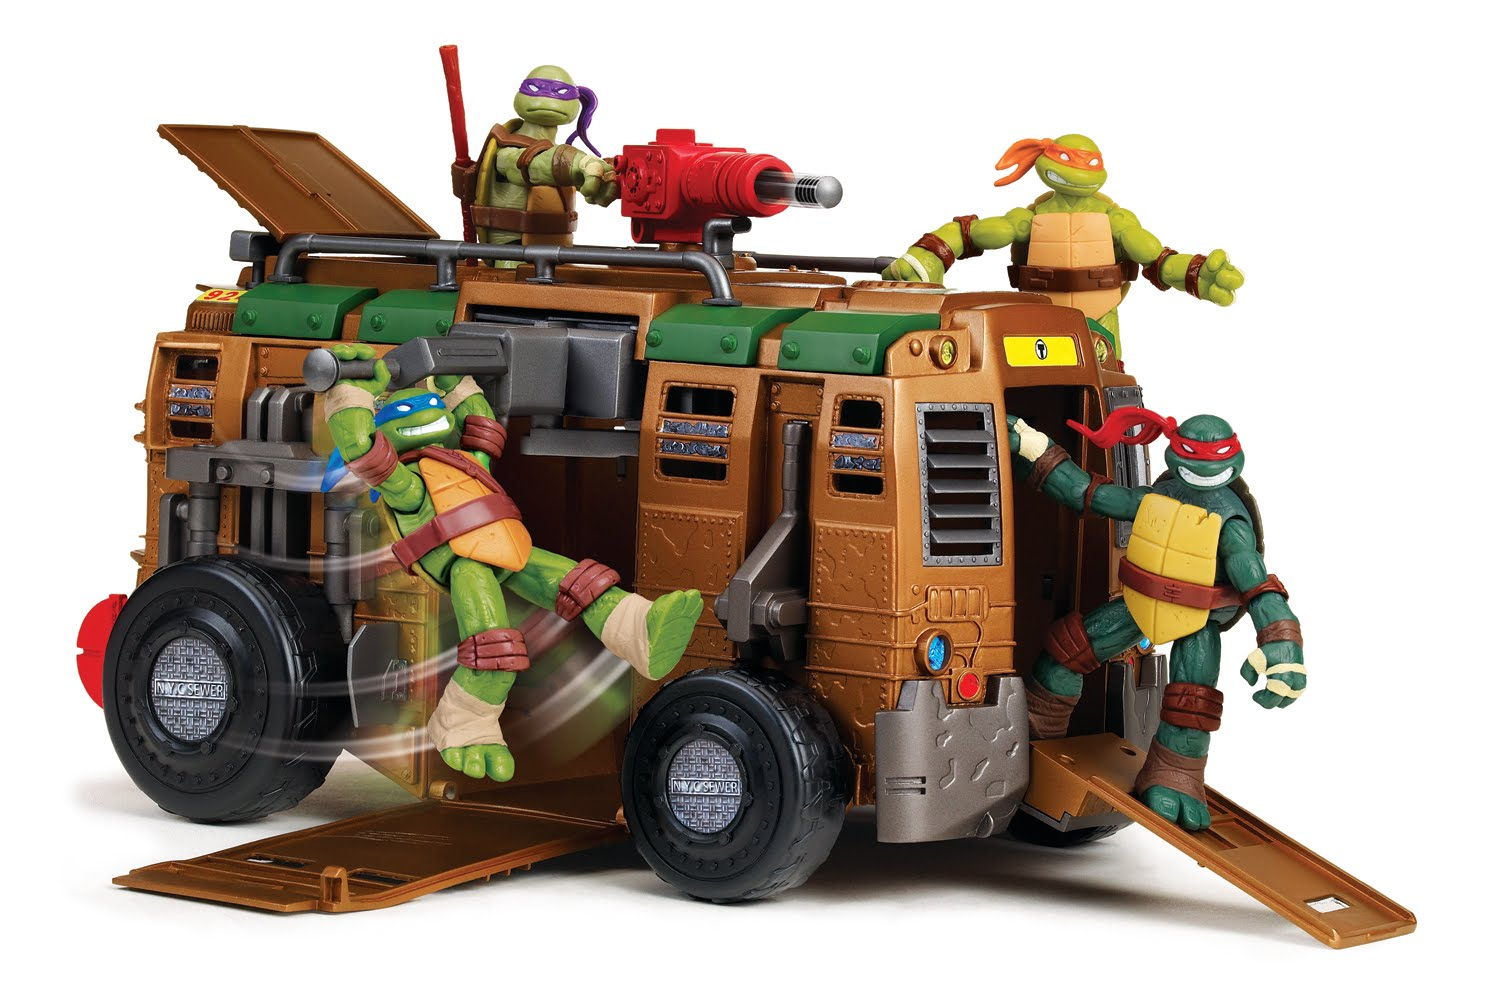 Ninja Turtles Toys : Nickalive vote now for nickelodeon s brand new quot teenage